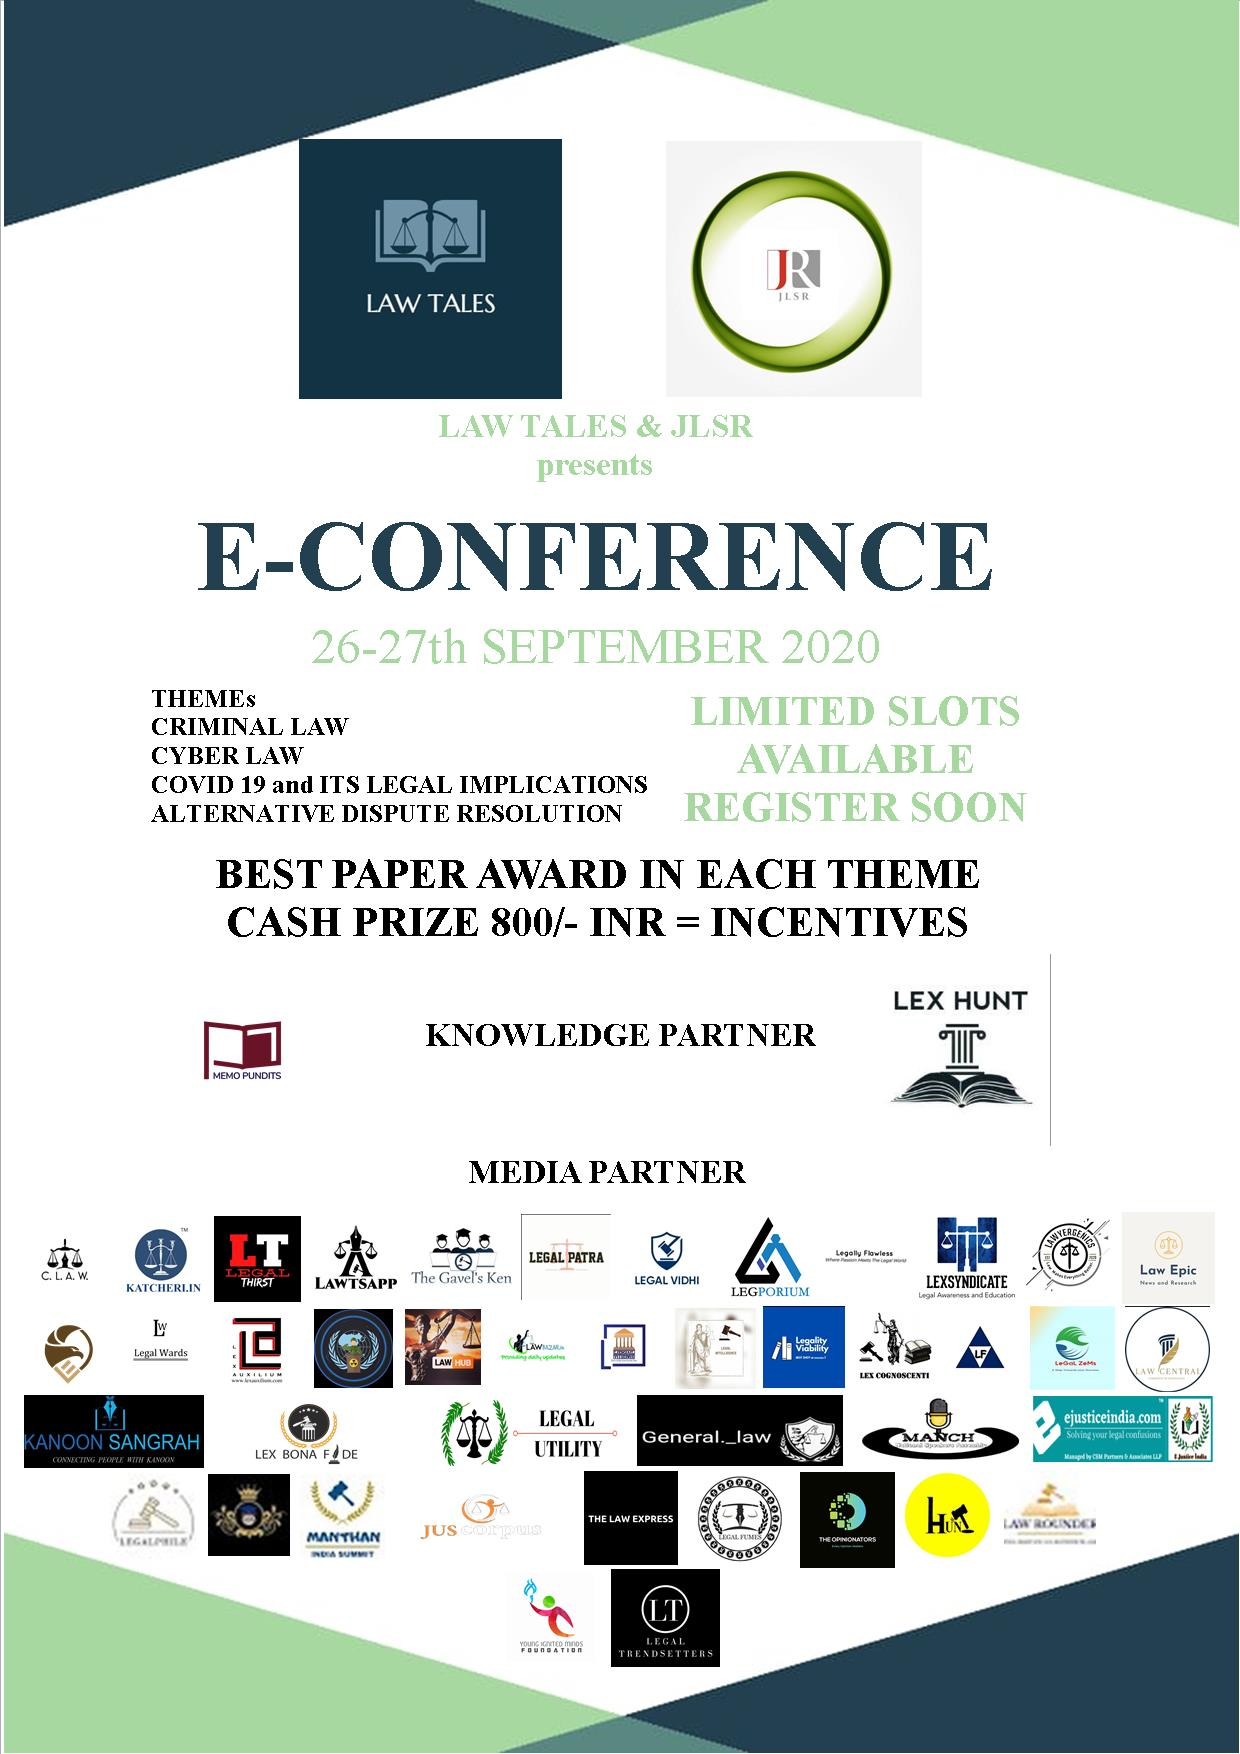 E- CONFERENCE by LAW TALES & JLSR JOURNAL: Submit by 15th September 2020